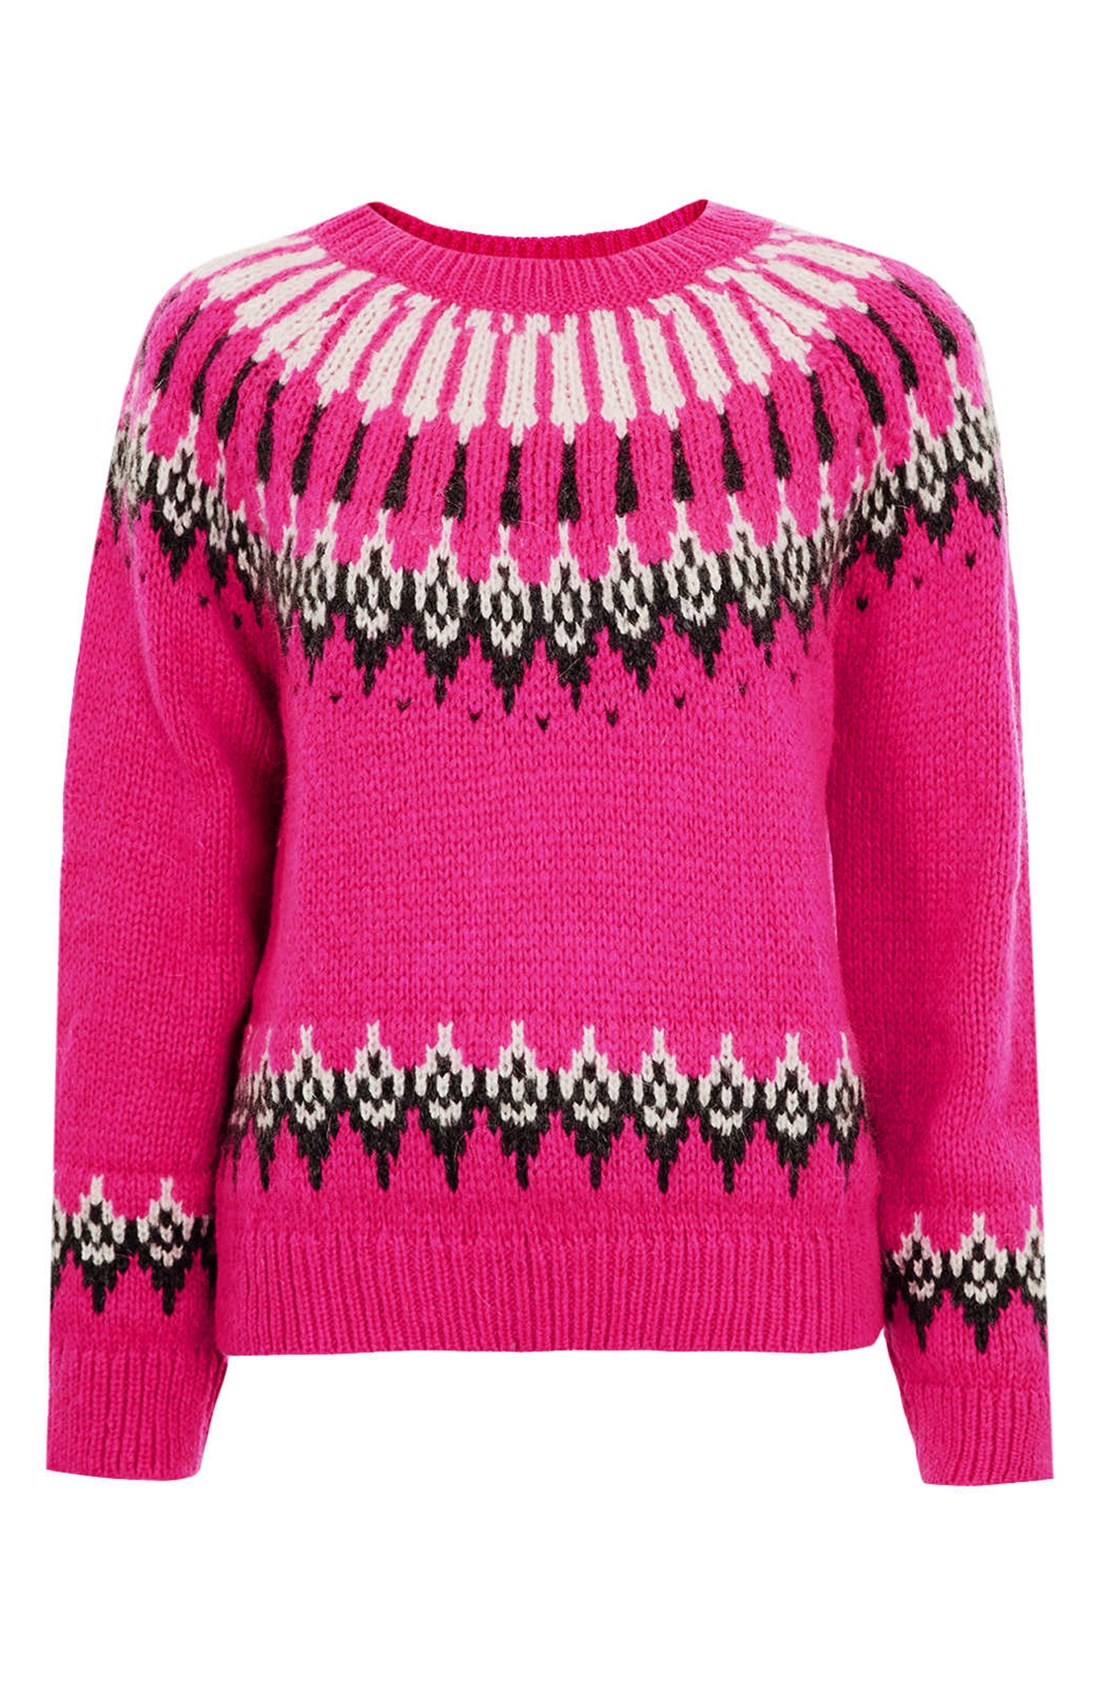 Topshop Peacock Fair Isle Knit Sweater in Pink | Lyst